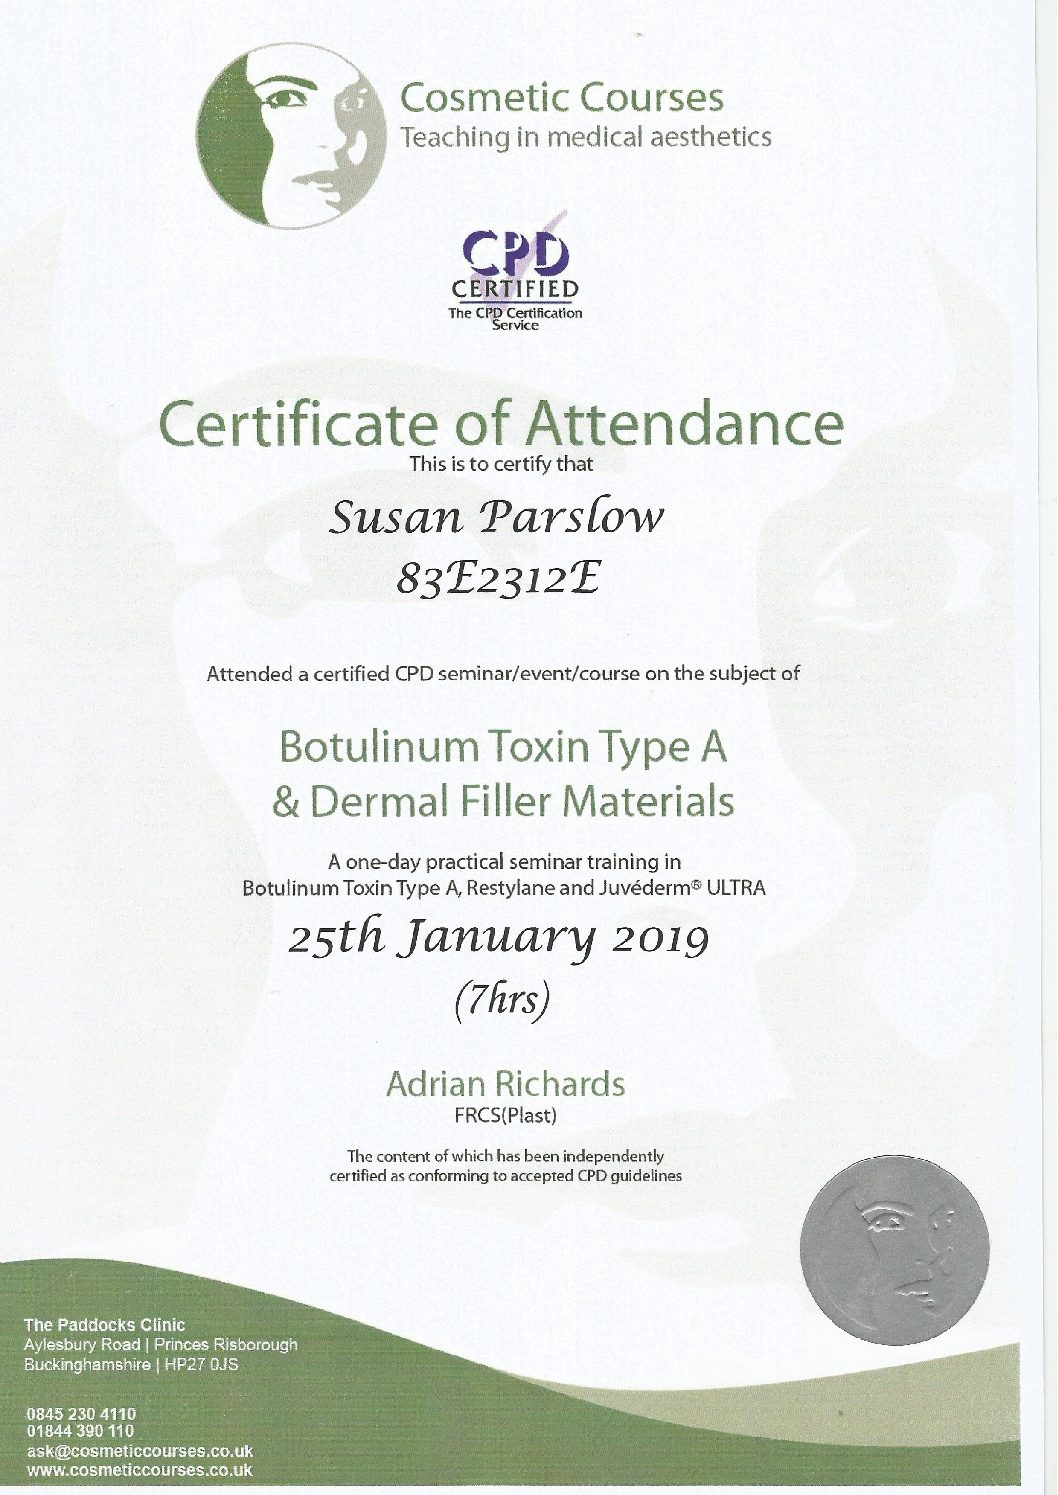 Foundation Cosmetic Course Certificate